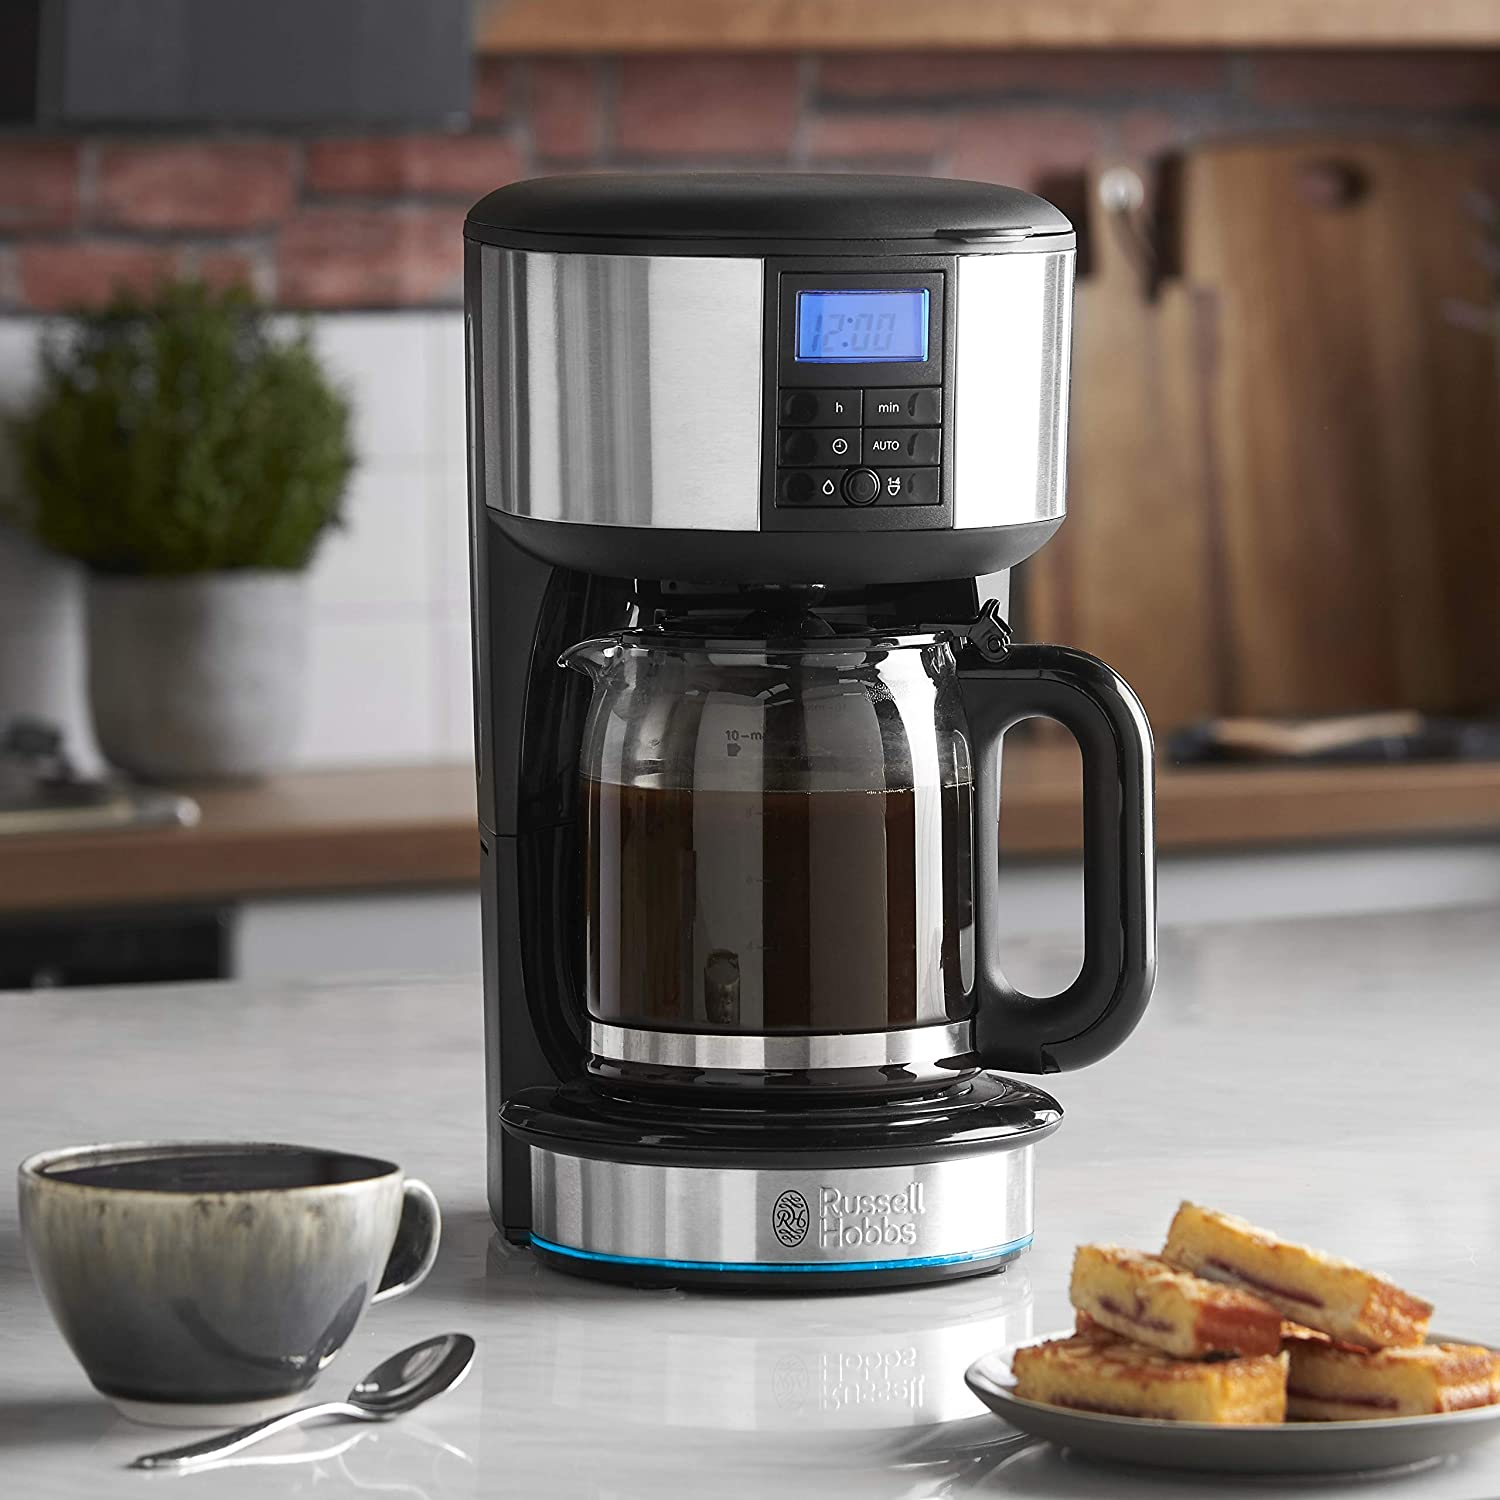 Amazon.com: Russell Hobbs Buckingham Filtro Cafetera ...